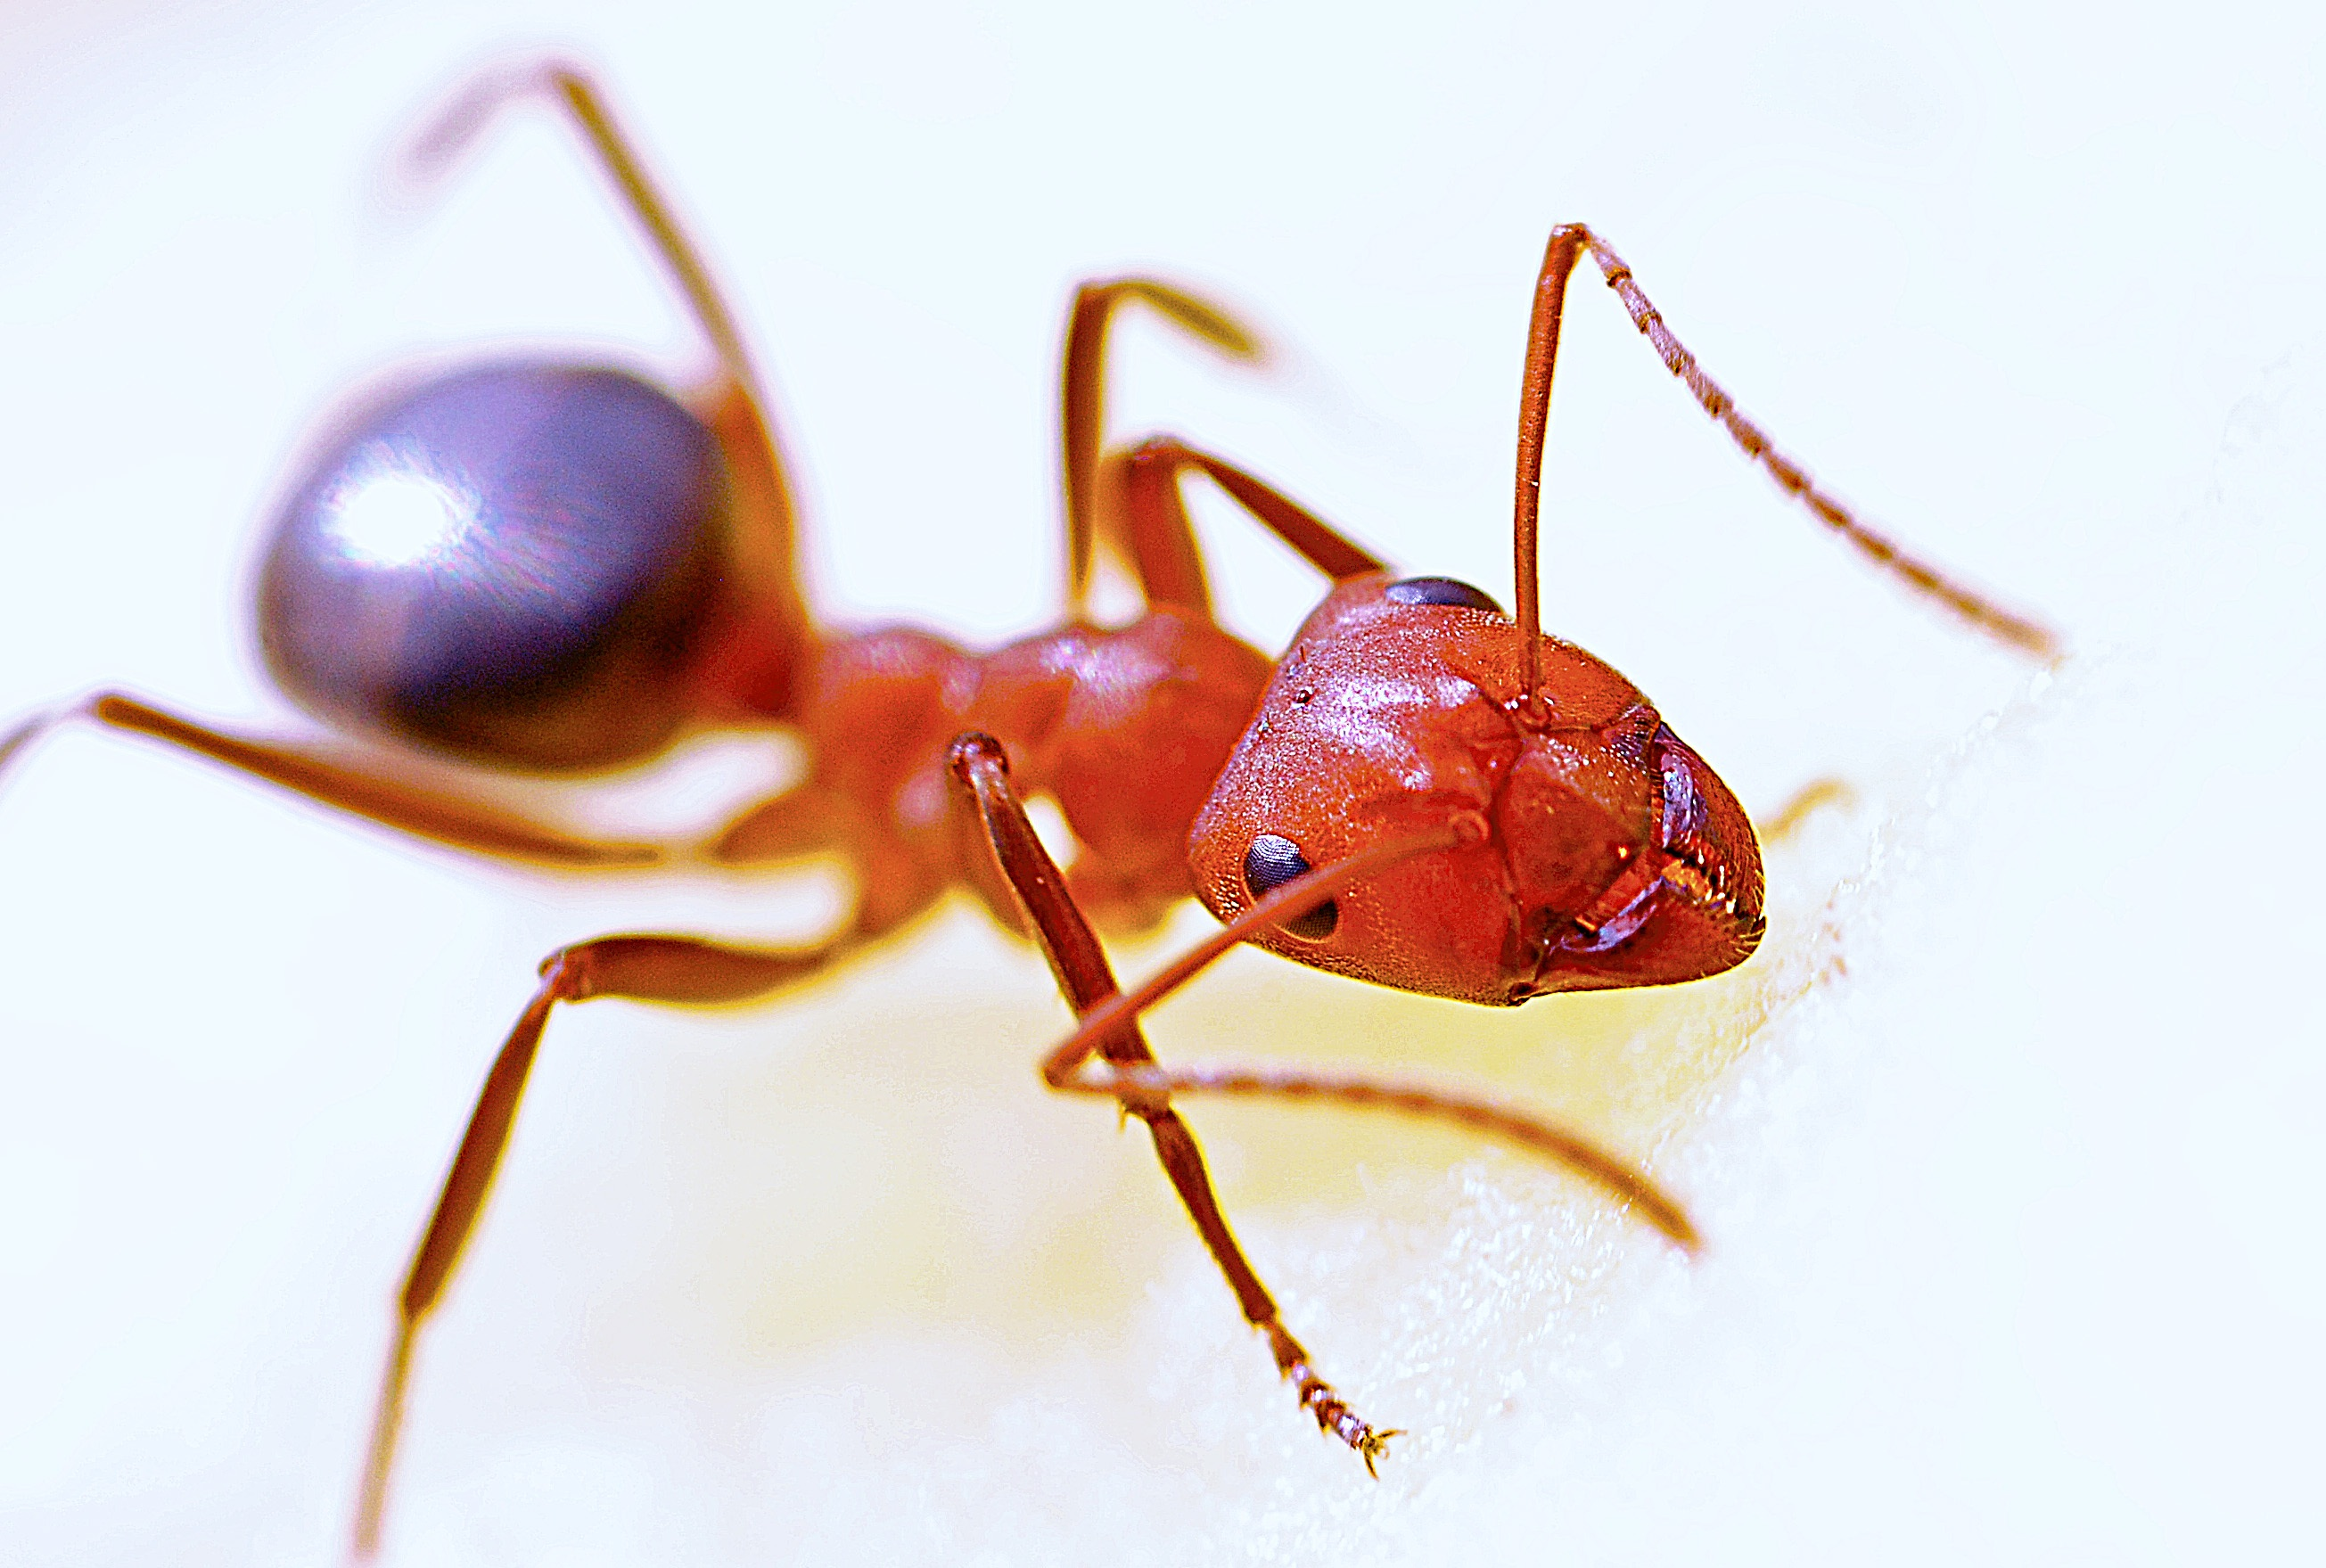 Ant Pictures Pexels Free Stock Photos